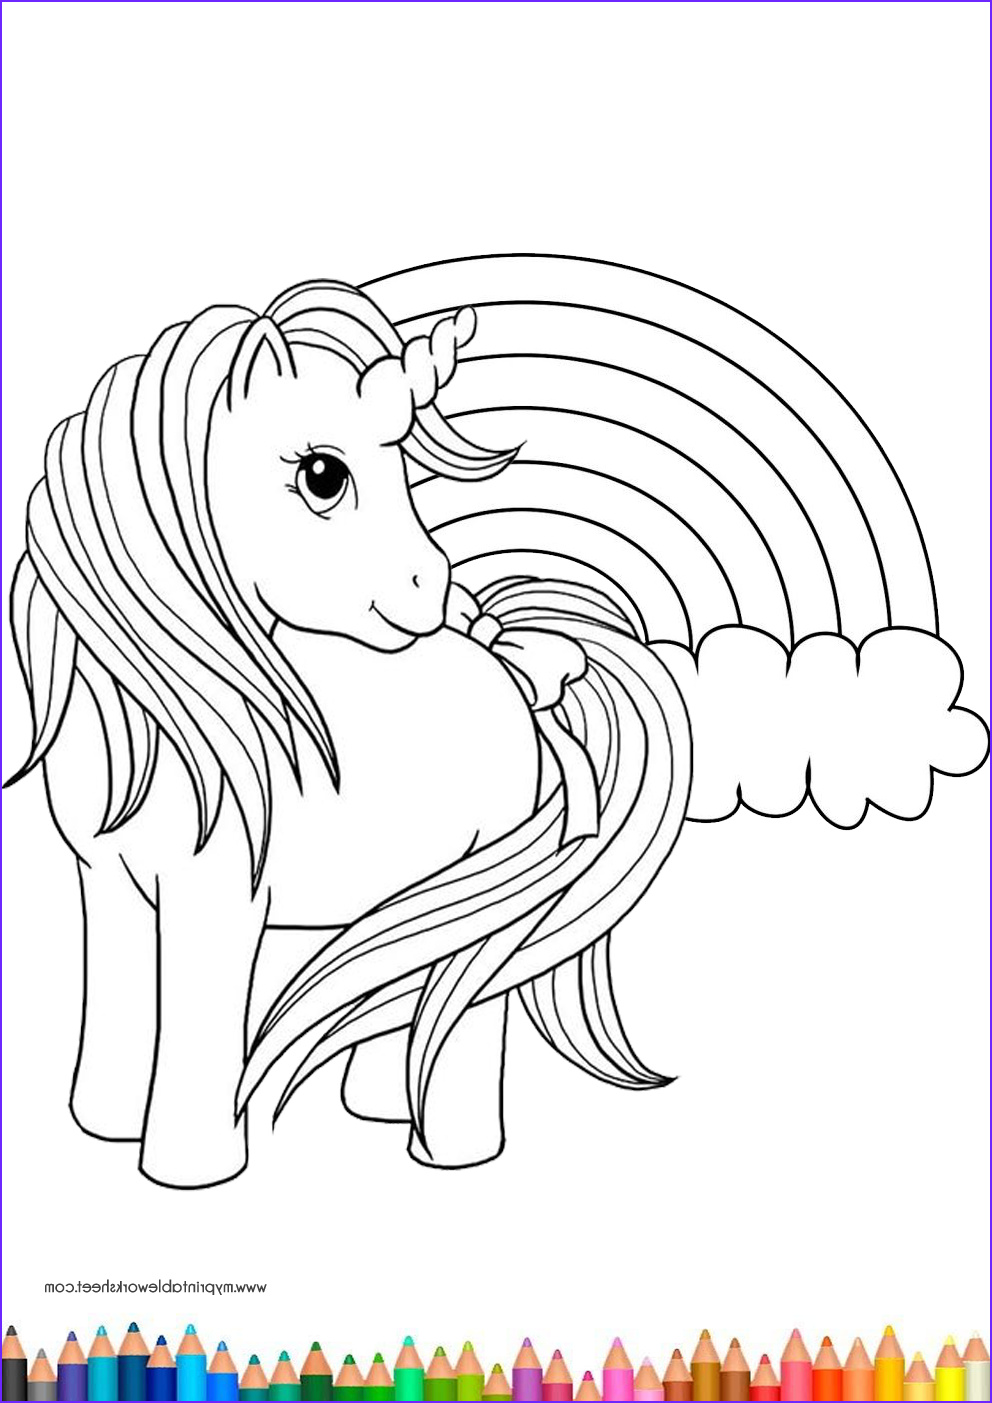 Kids Unicorn Coloring Page New Photography Easy Cute Unicorn Coloring Pages For Kids And Girls